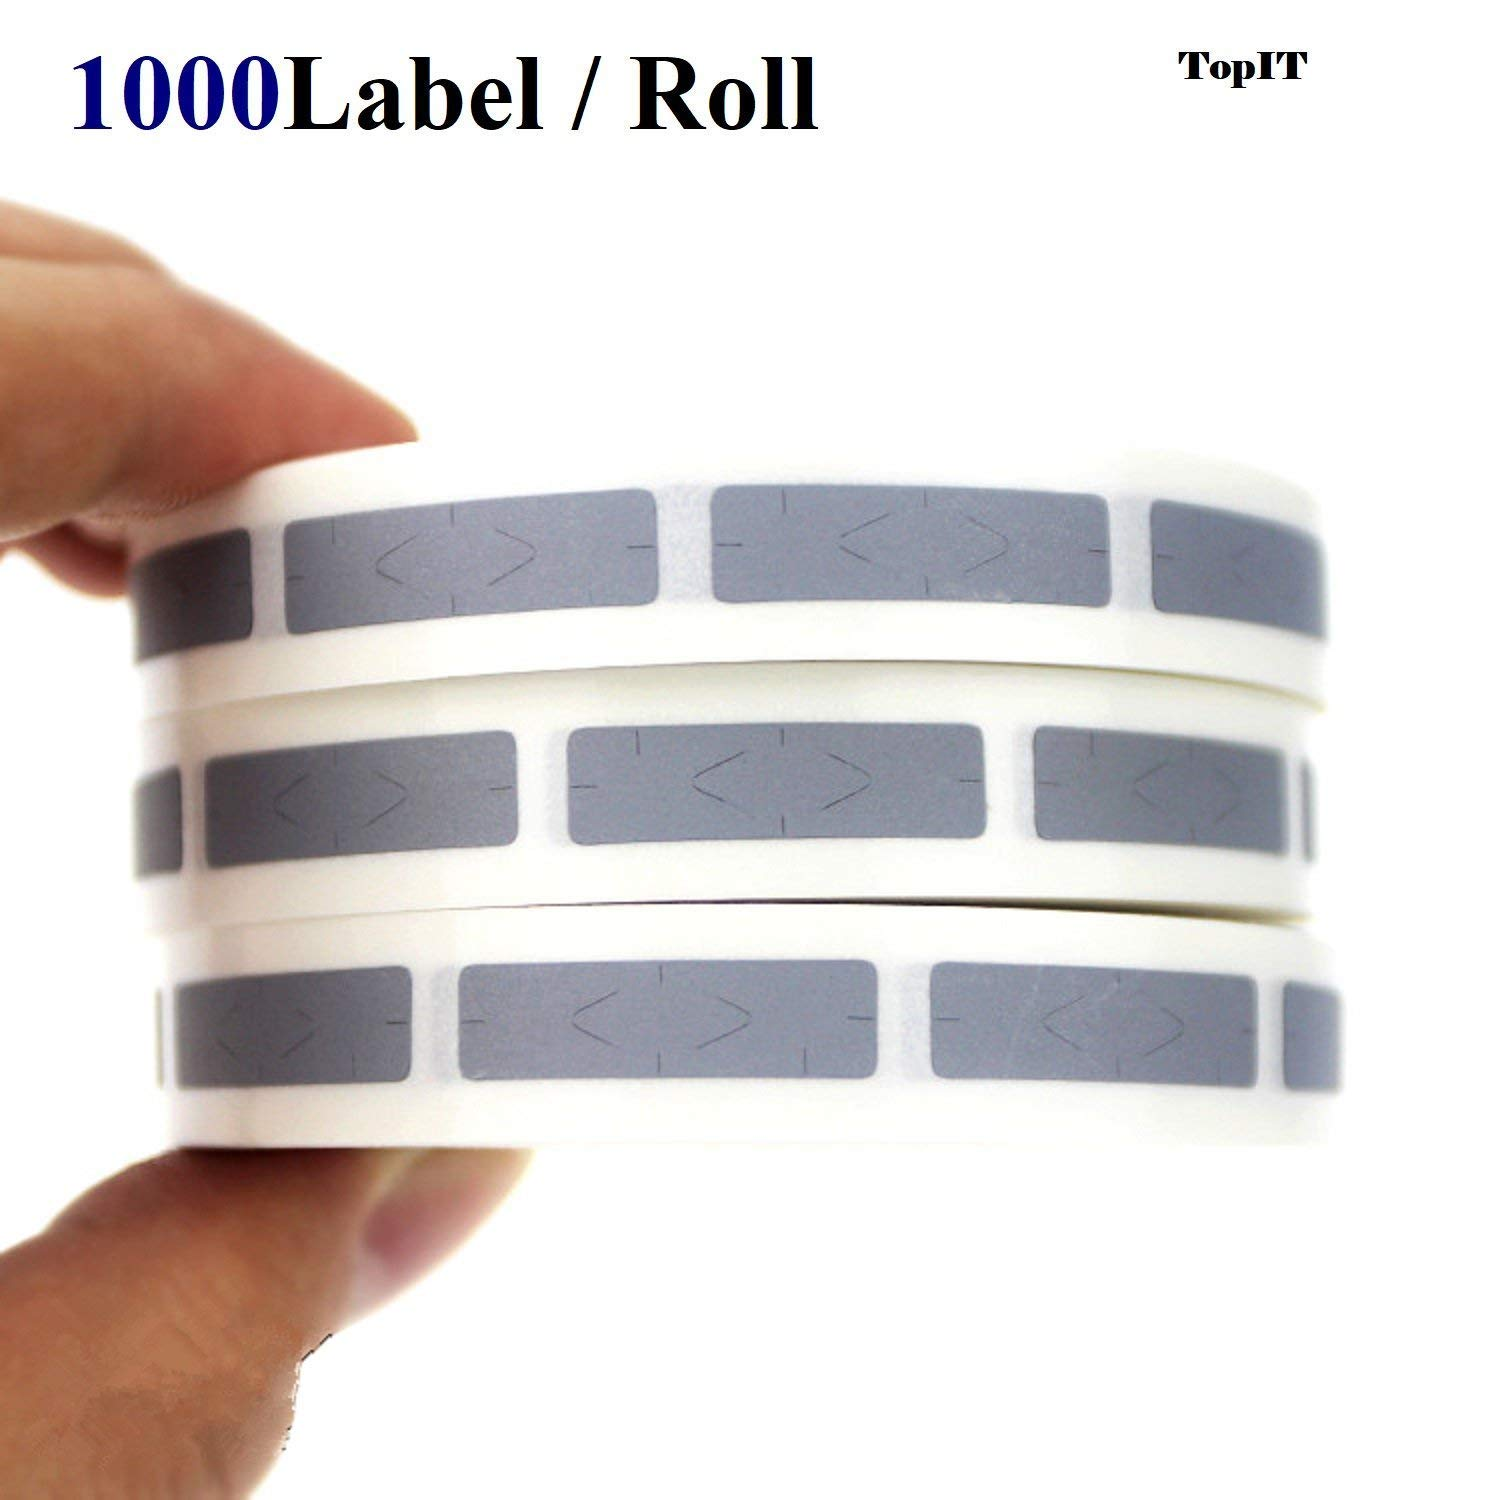 Password Scratch Off Labels Silver Gift Card scratch off Sticker for Business Games and learning purposes [0.24'' x 1.57''inch] [6 x 40mm] [Roll of 1000]